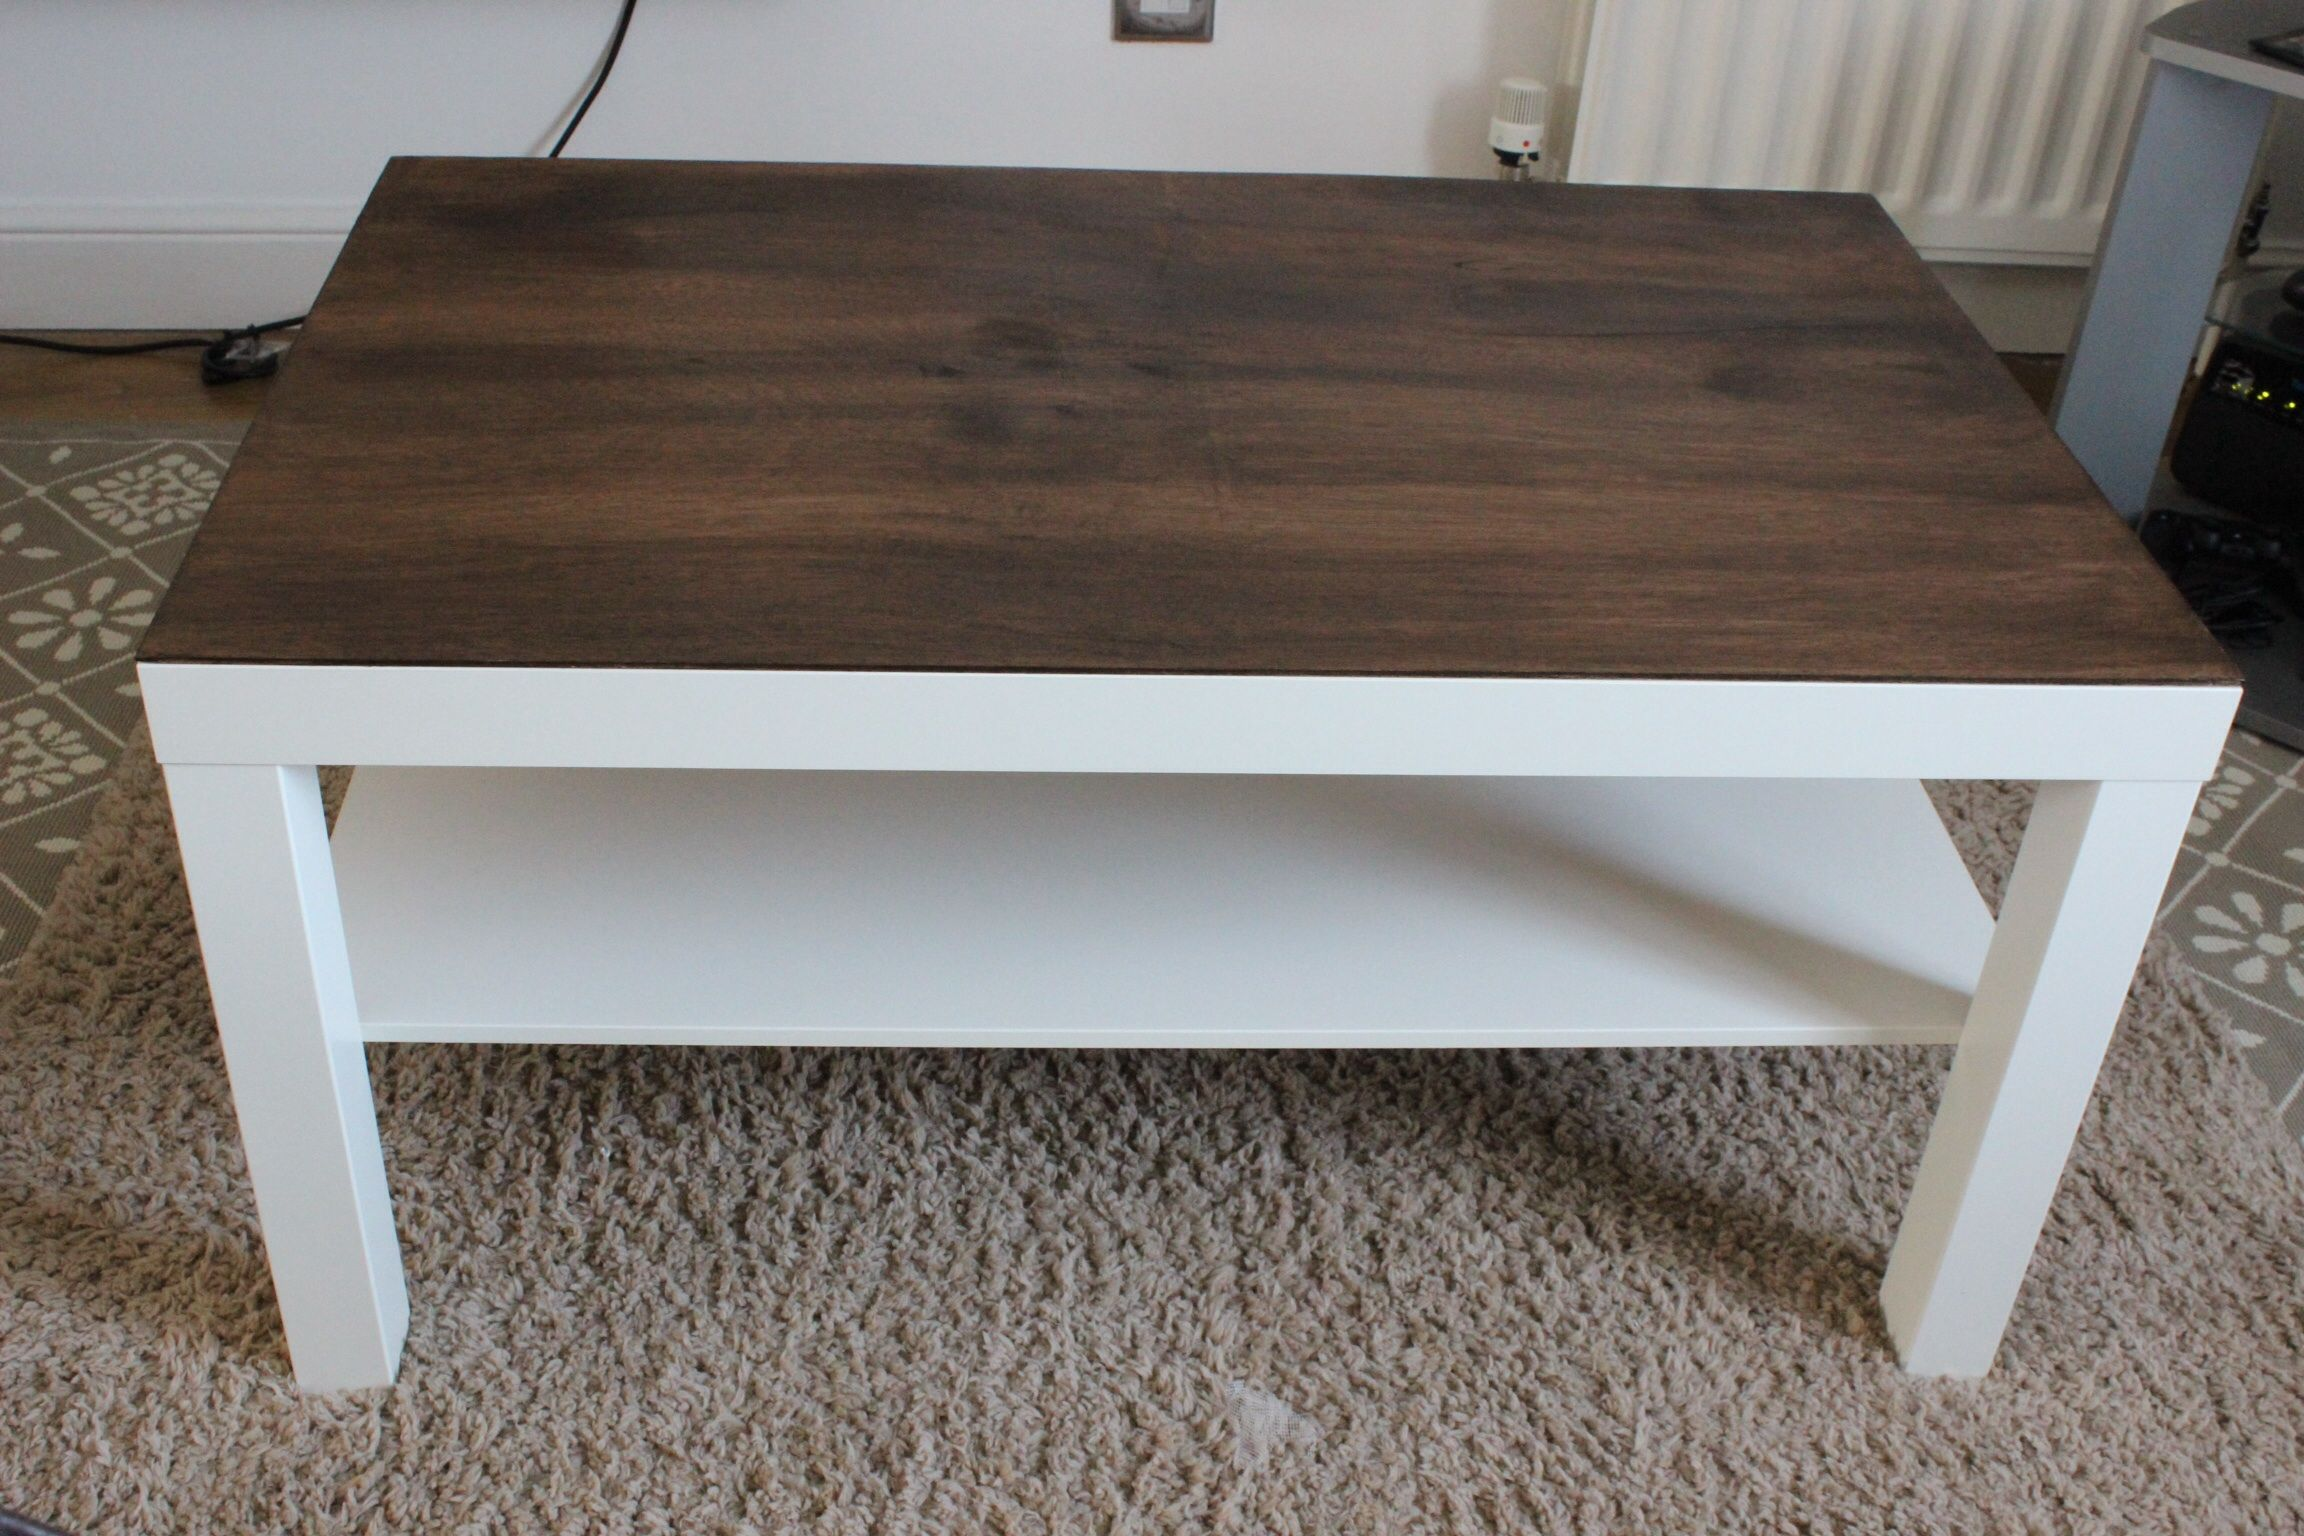 An Ikea Lack Coffee Table Hack A Stained Piece Of Plywood Makes Such Difference